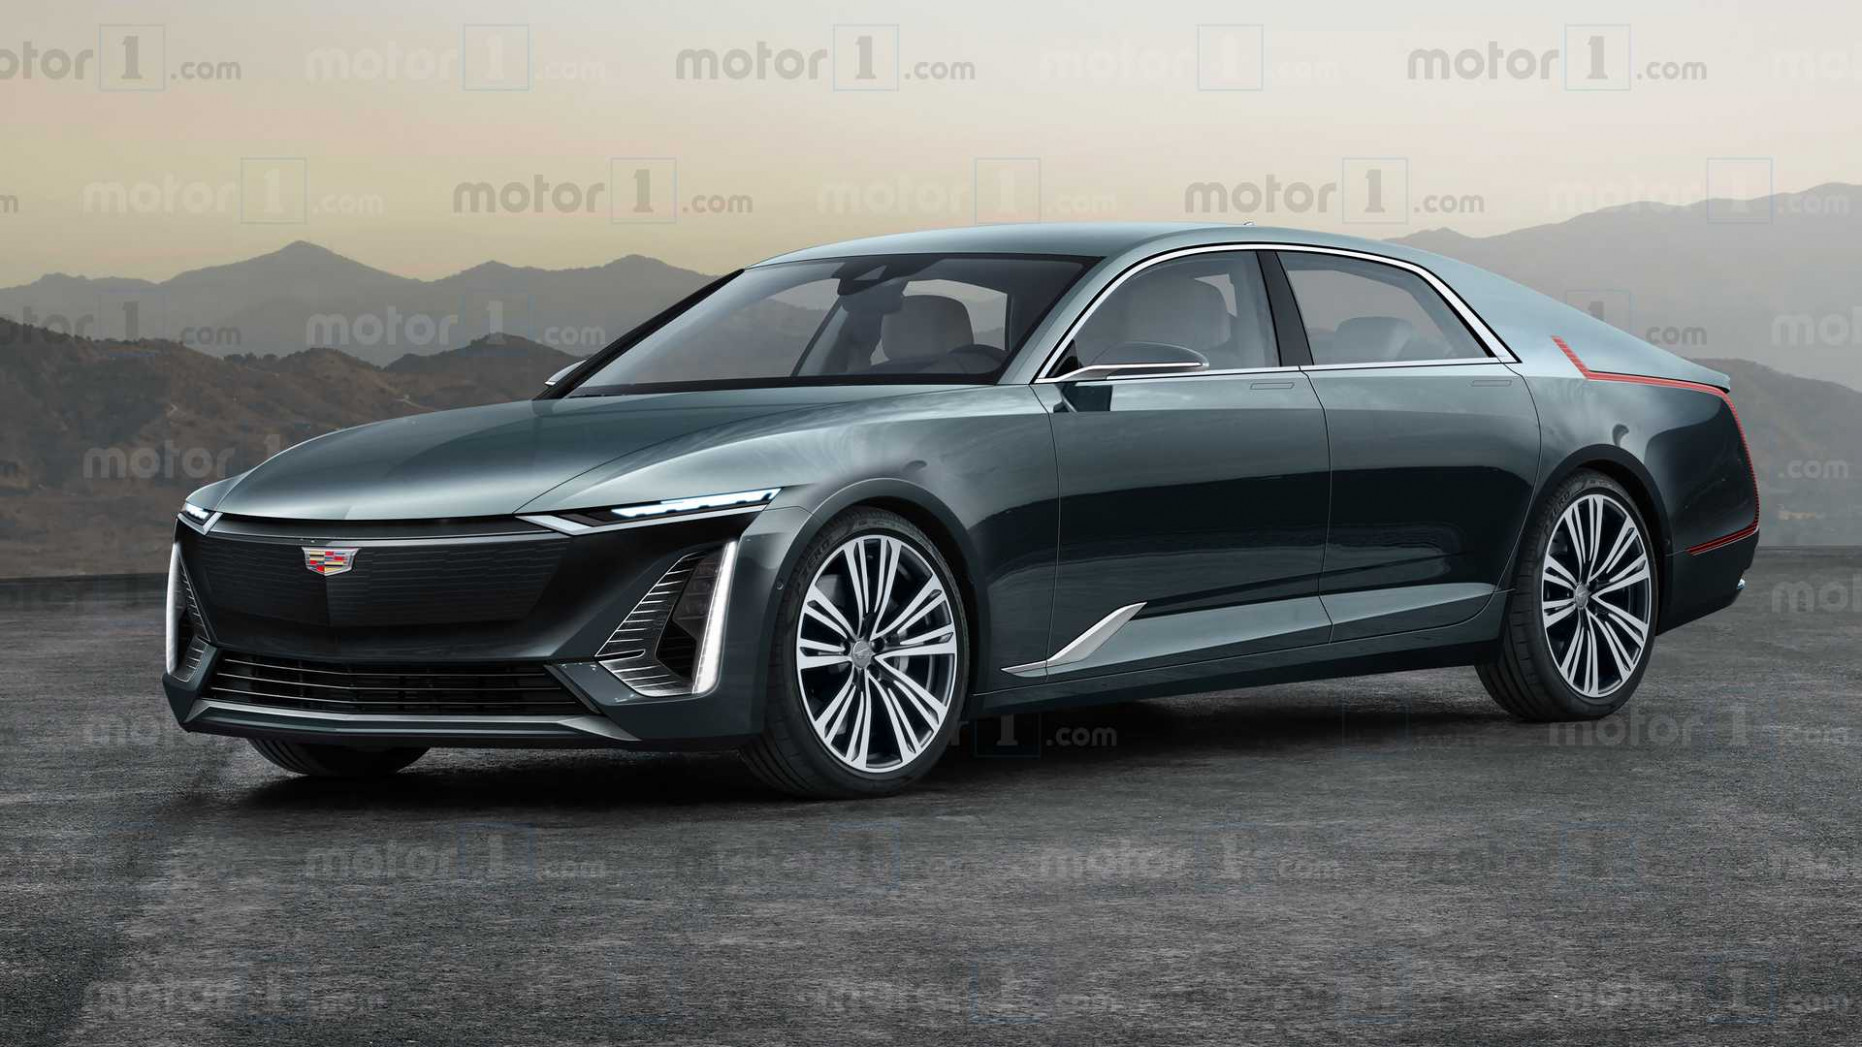 New Concept Cadillac Electric Car 2022